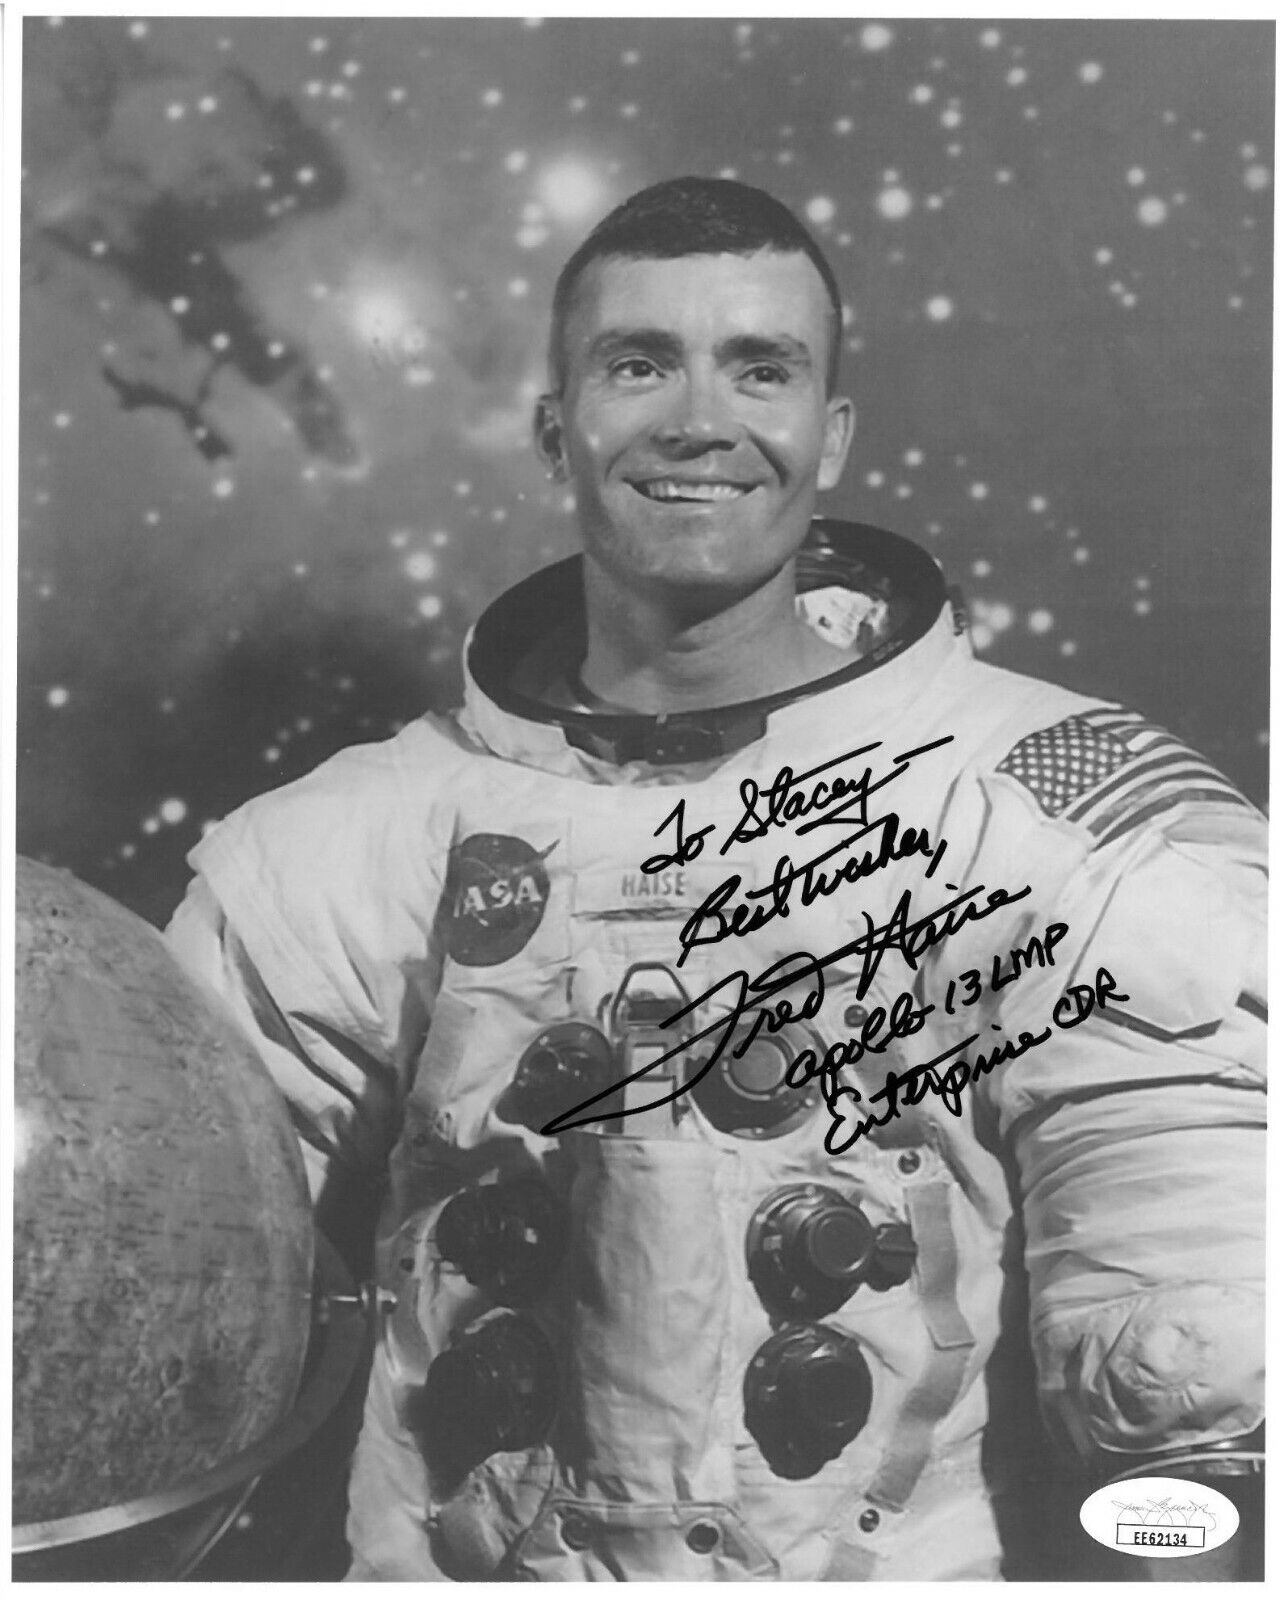 s l1600 - Fred Haise signed NASA Astronaut/Pilot 8x10 Photo Apollo 13 LMP To Stacey- JSA